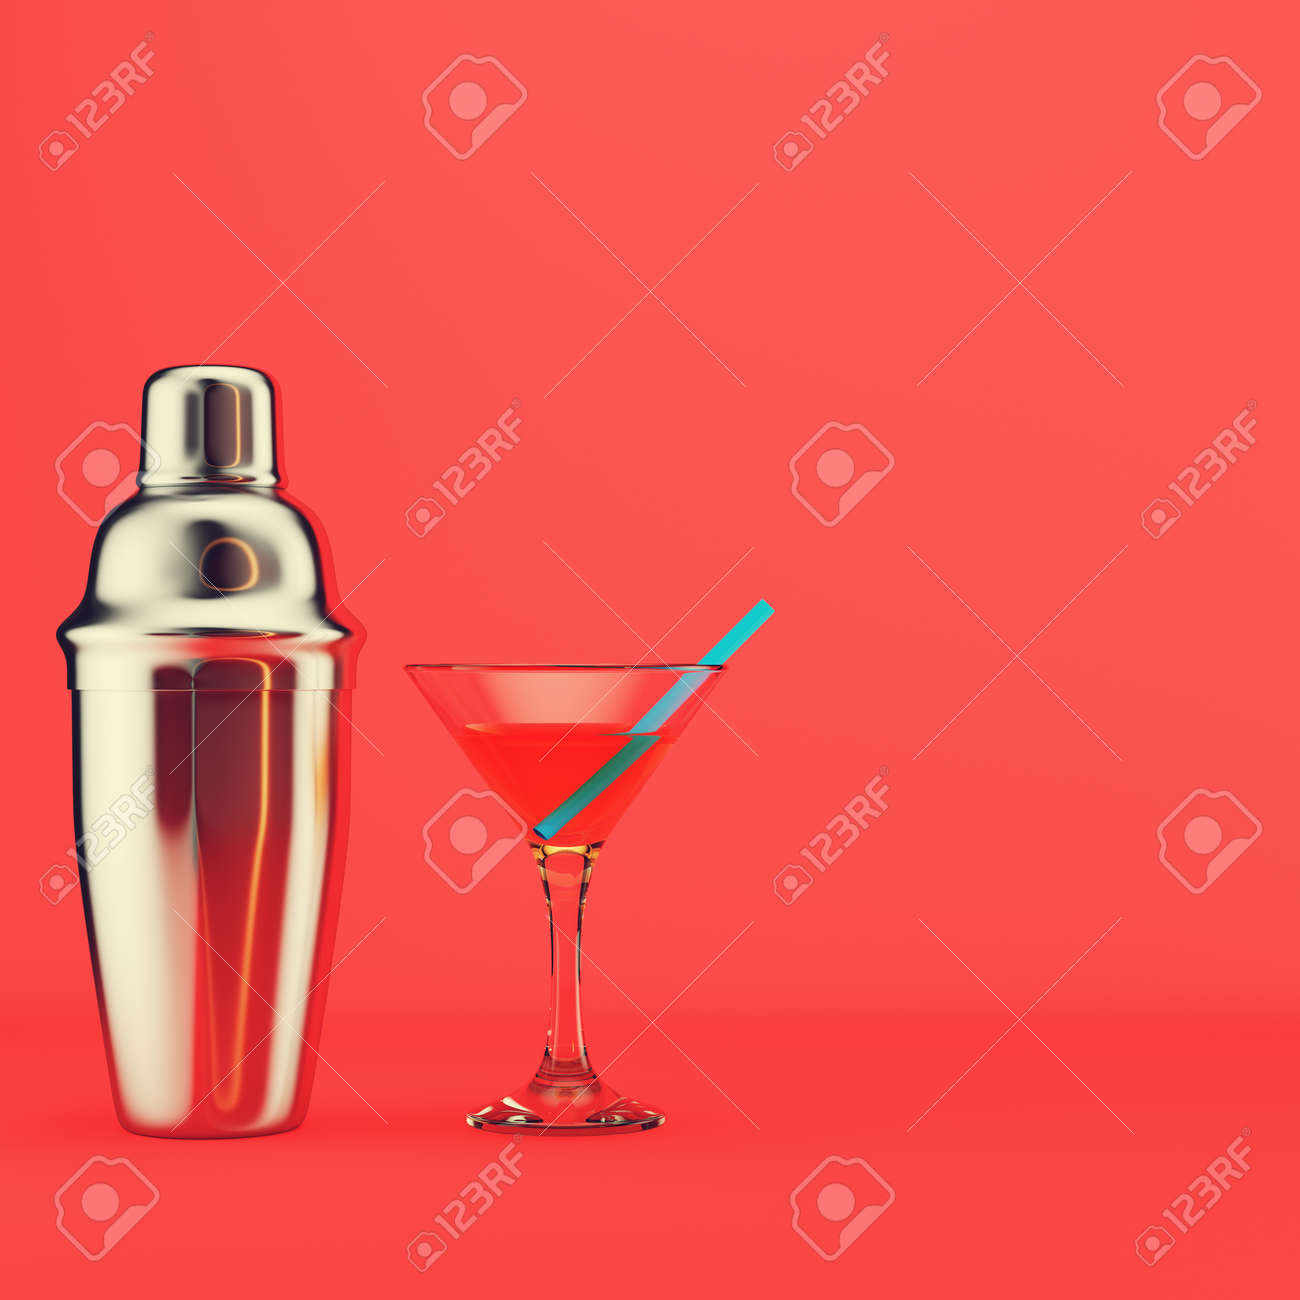 Shaker, and cocktail with straw on red background. 3d render - 170609762